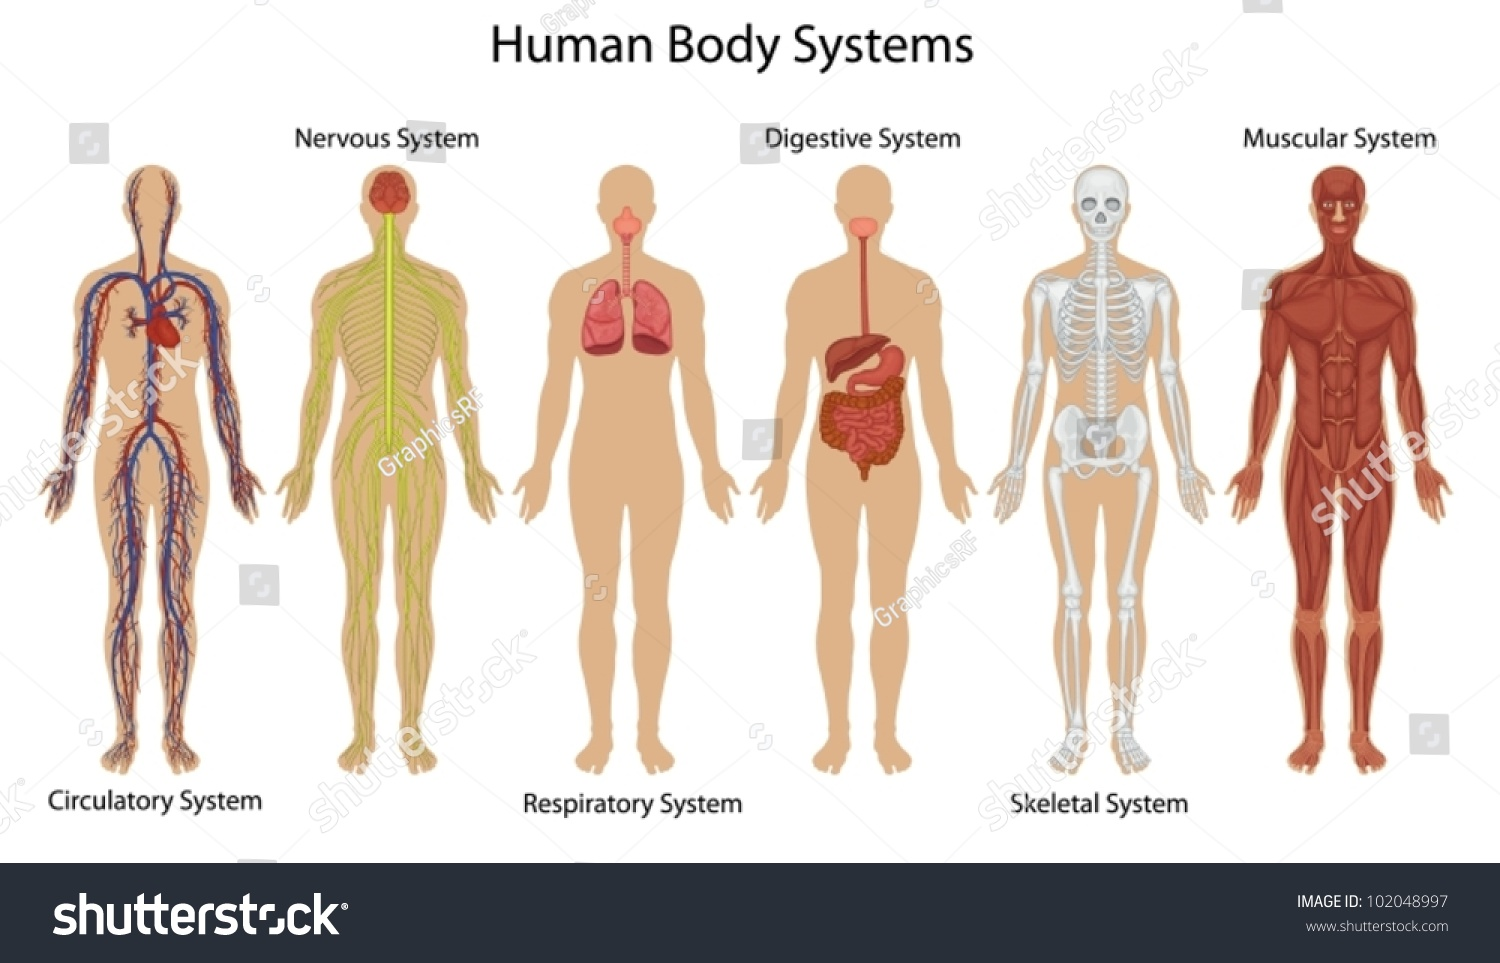 Illustration Human Body Systems Stock Vector 102048997 - Shutterstock